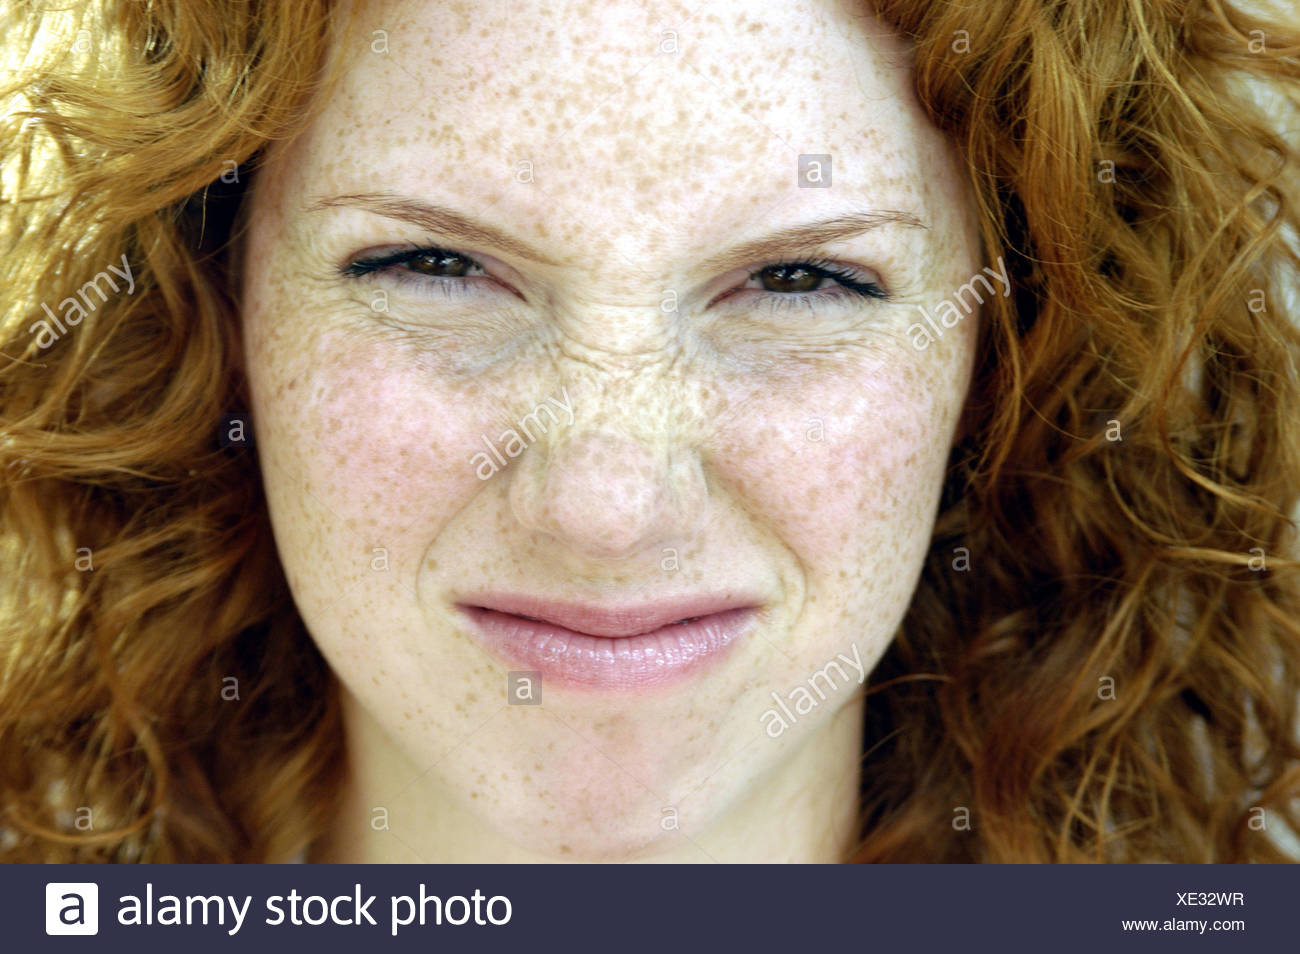 Woman, facial play, nose bodies, portrait, women's portrait, redheads, red-haired, locks, look, expression, rejection, aversion, disgust, disgust, naserümpfend, dissatisfied, devaluing - Stock Image